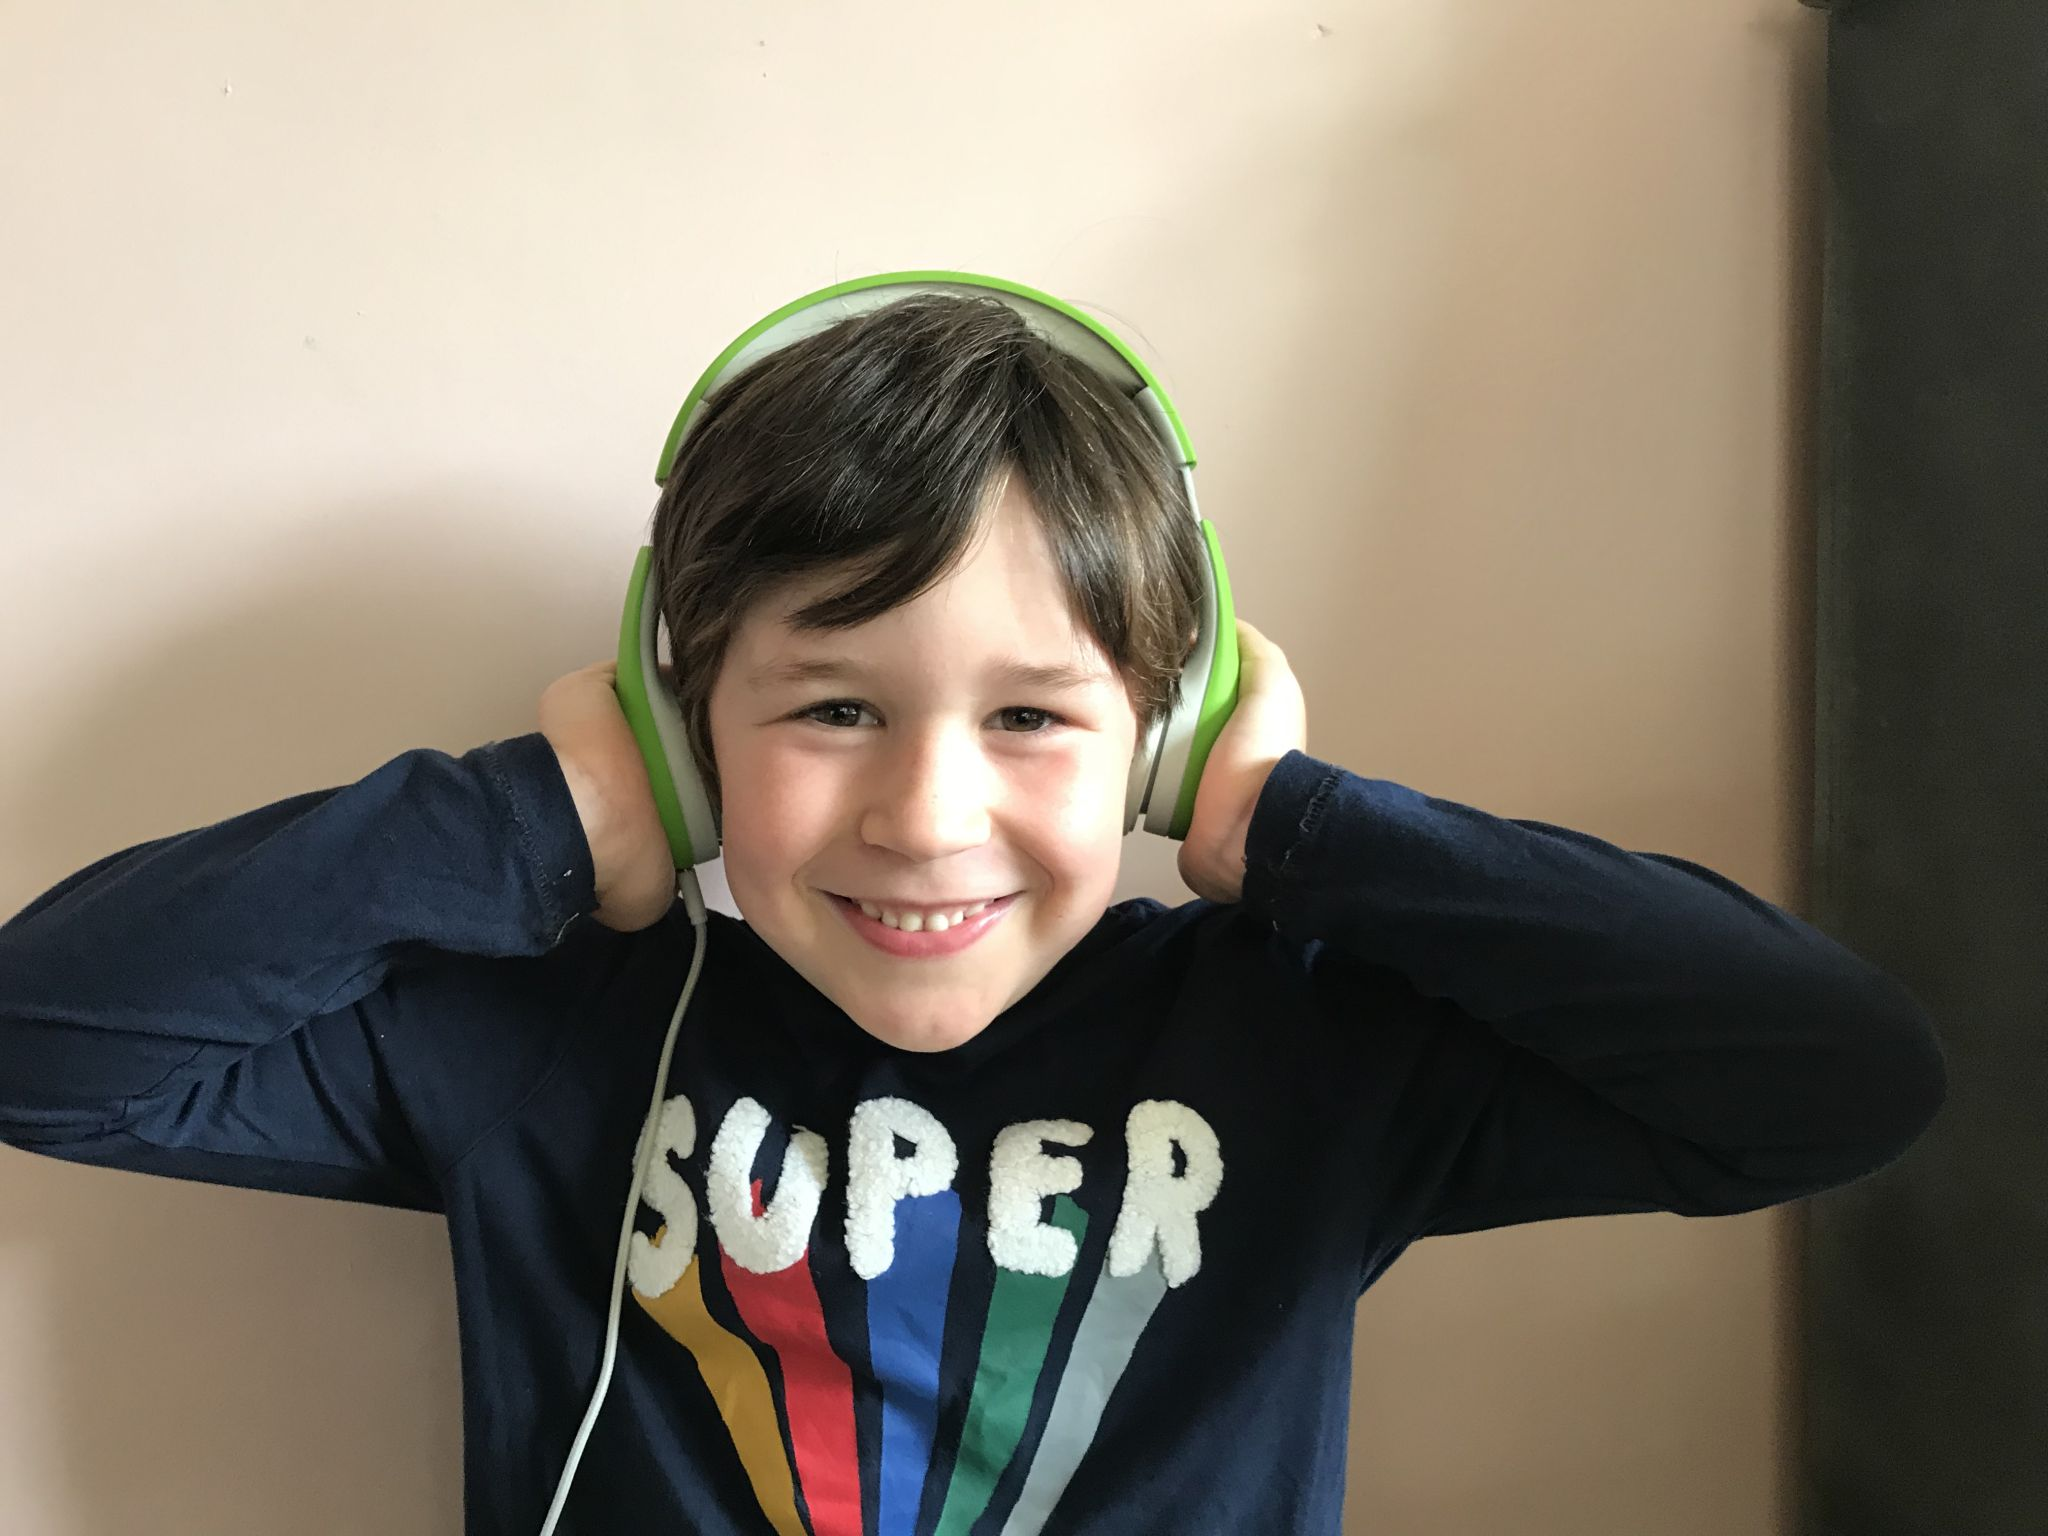 Boy wearing headphones smiling